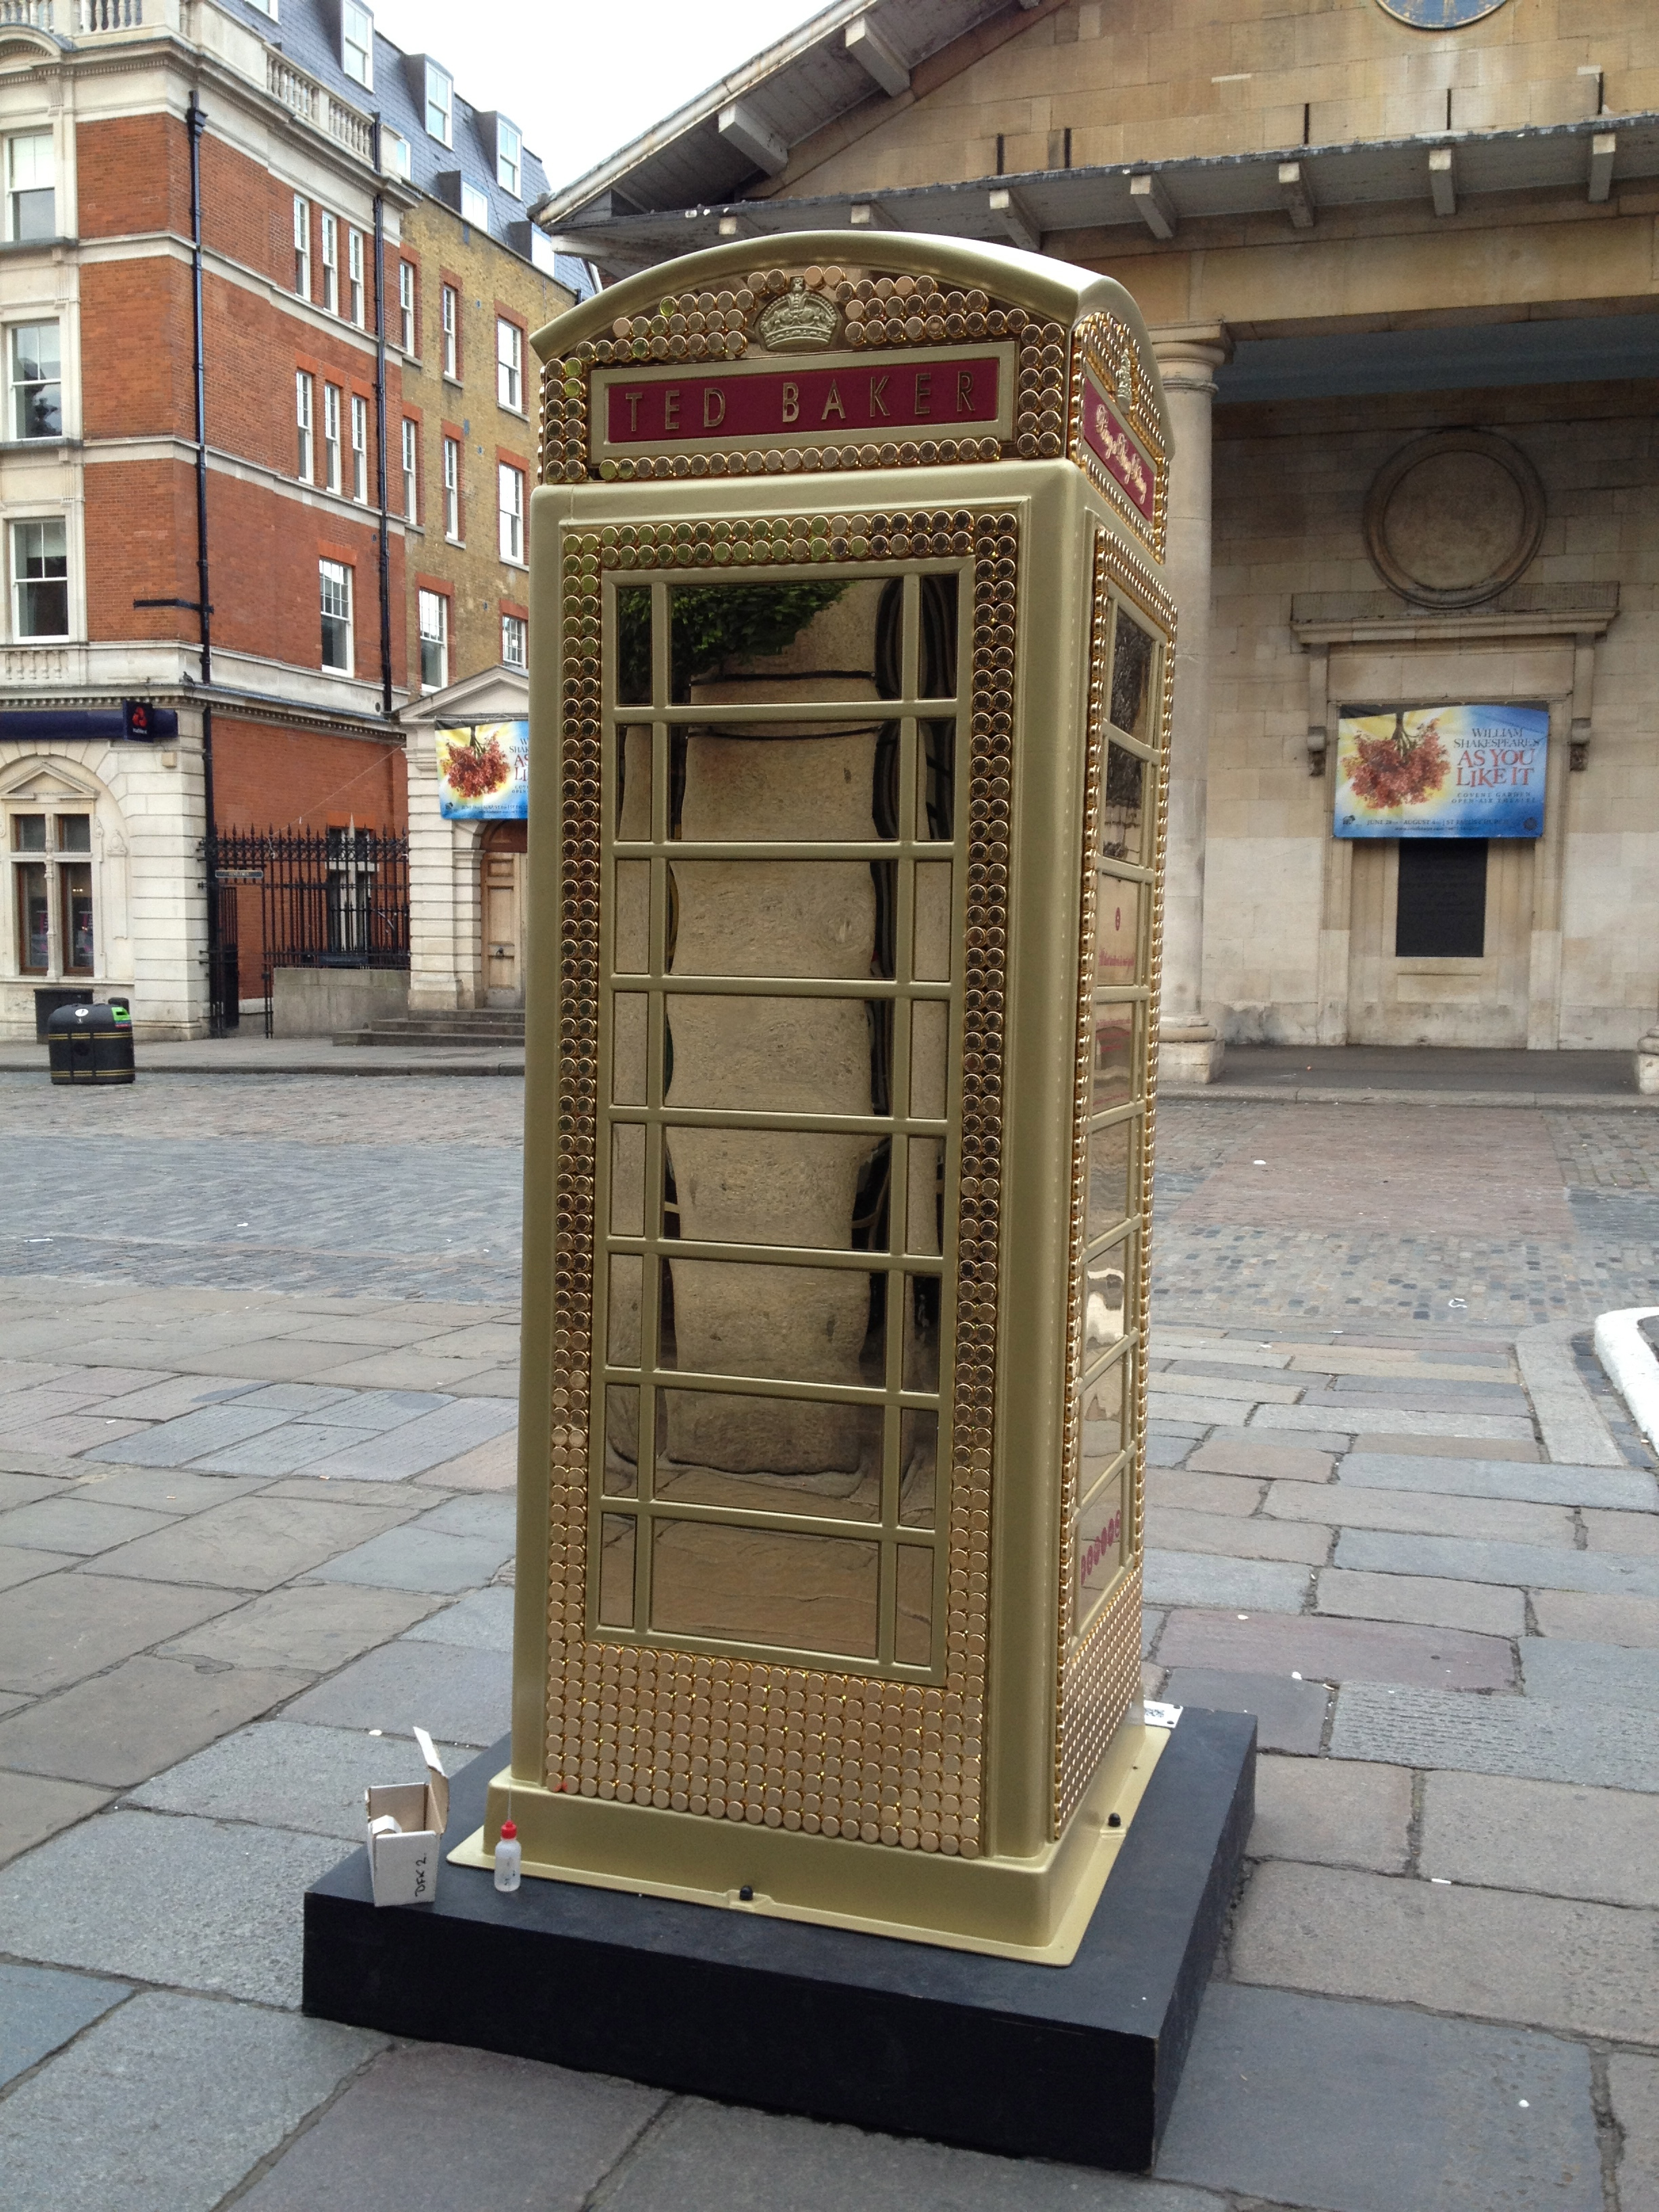 Ted Baker Phone Box For ChildLine Charity Auction